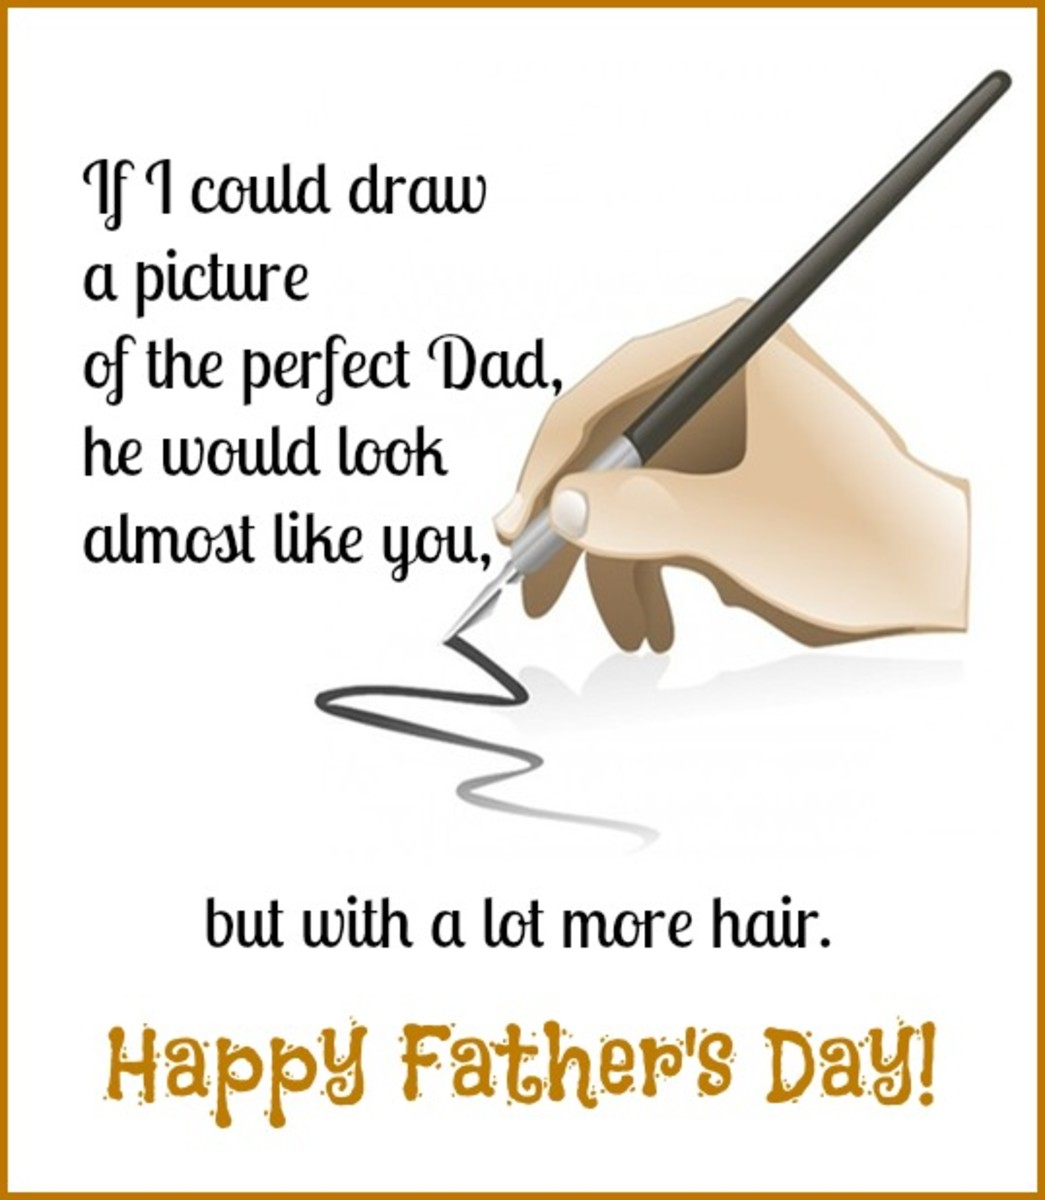 Funny Father's Day Card for Dad Who Is Losing His Hair